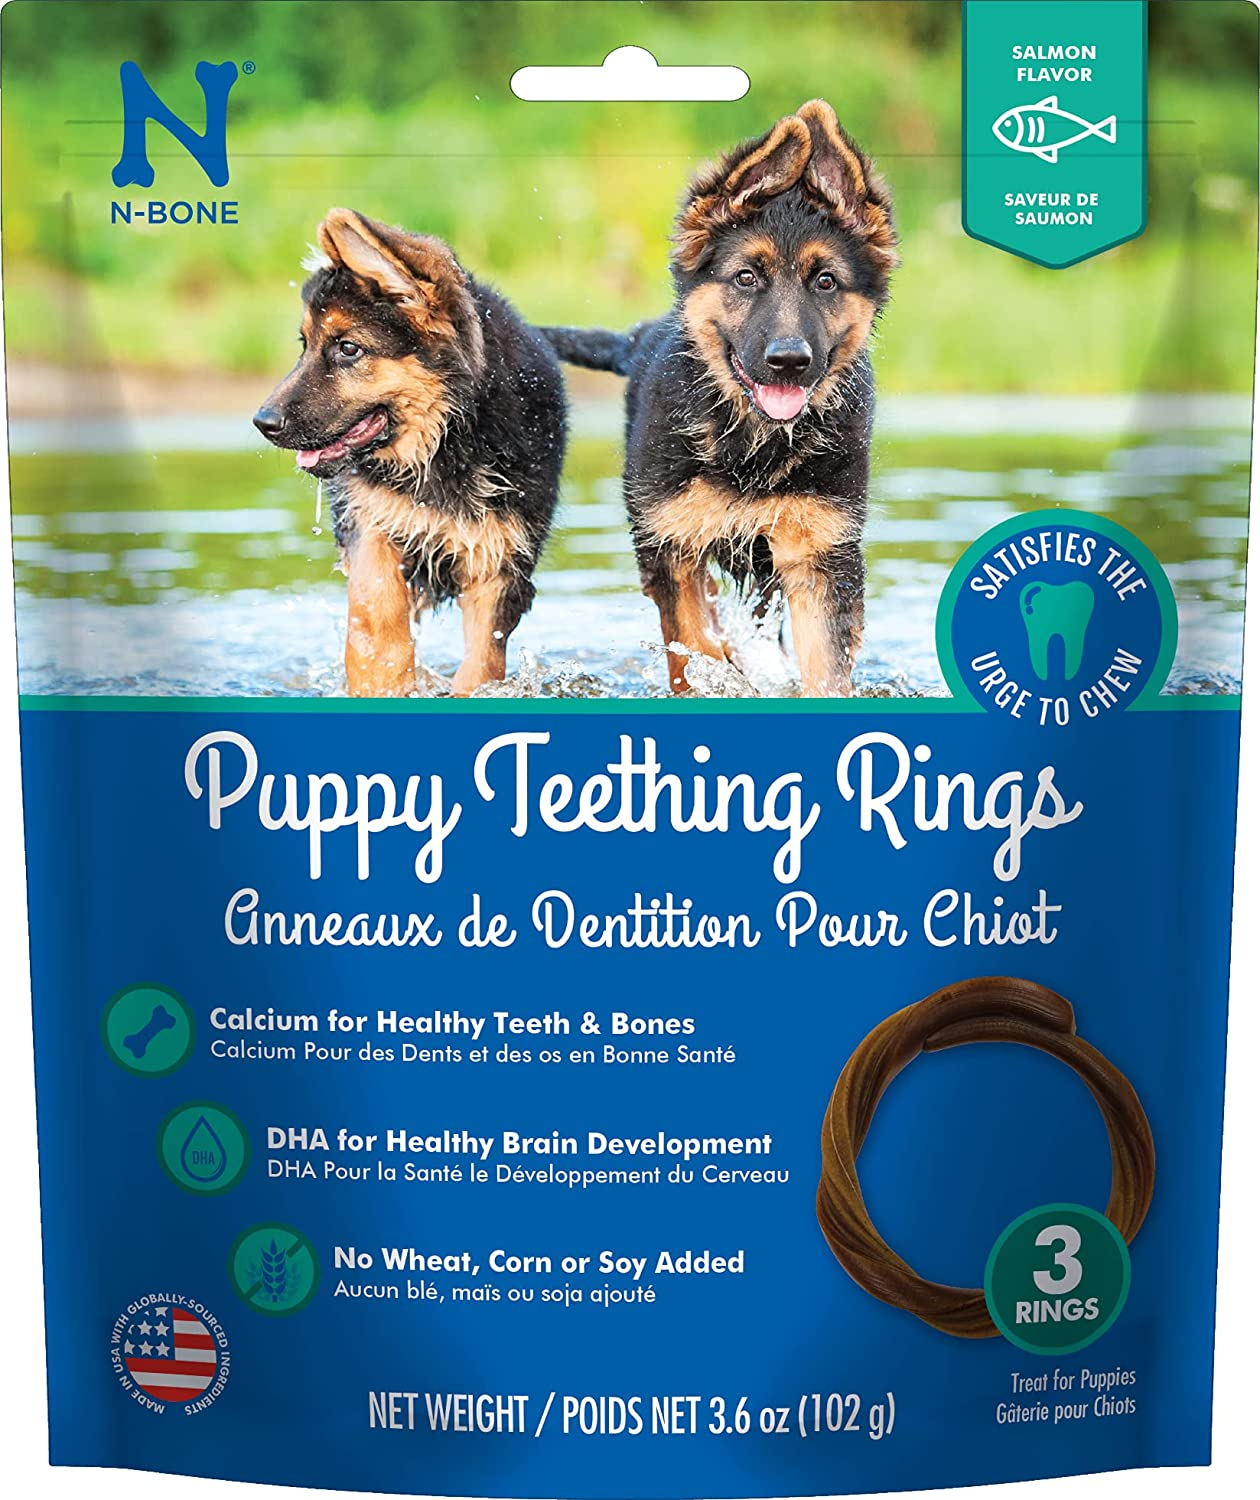 N-Bone Puppy Translated Teething Rings Salmon Natural 3 Count New Shipping Free 912566